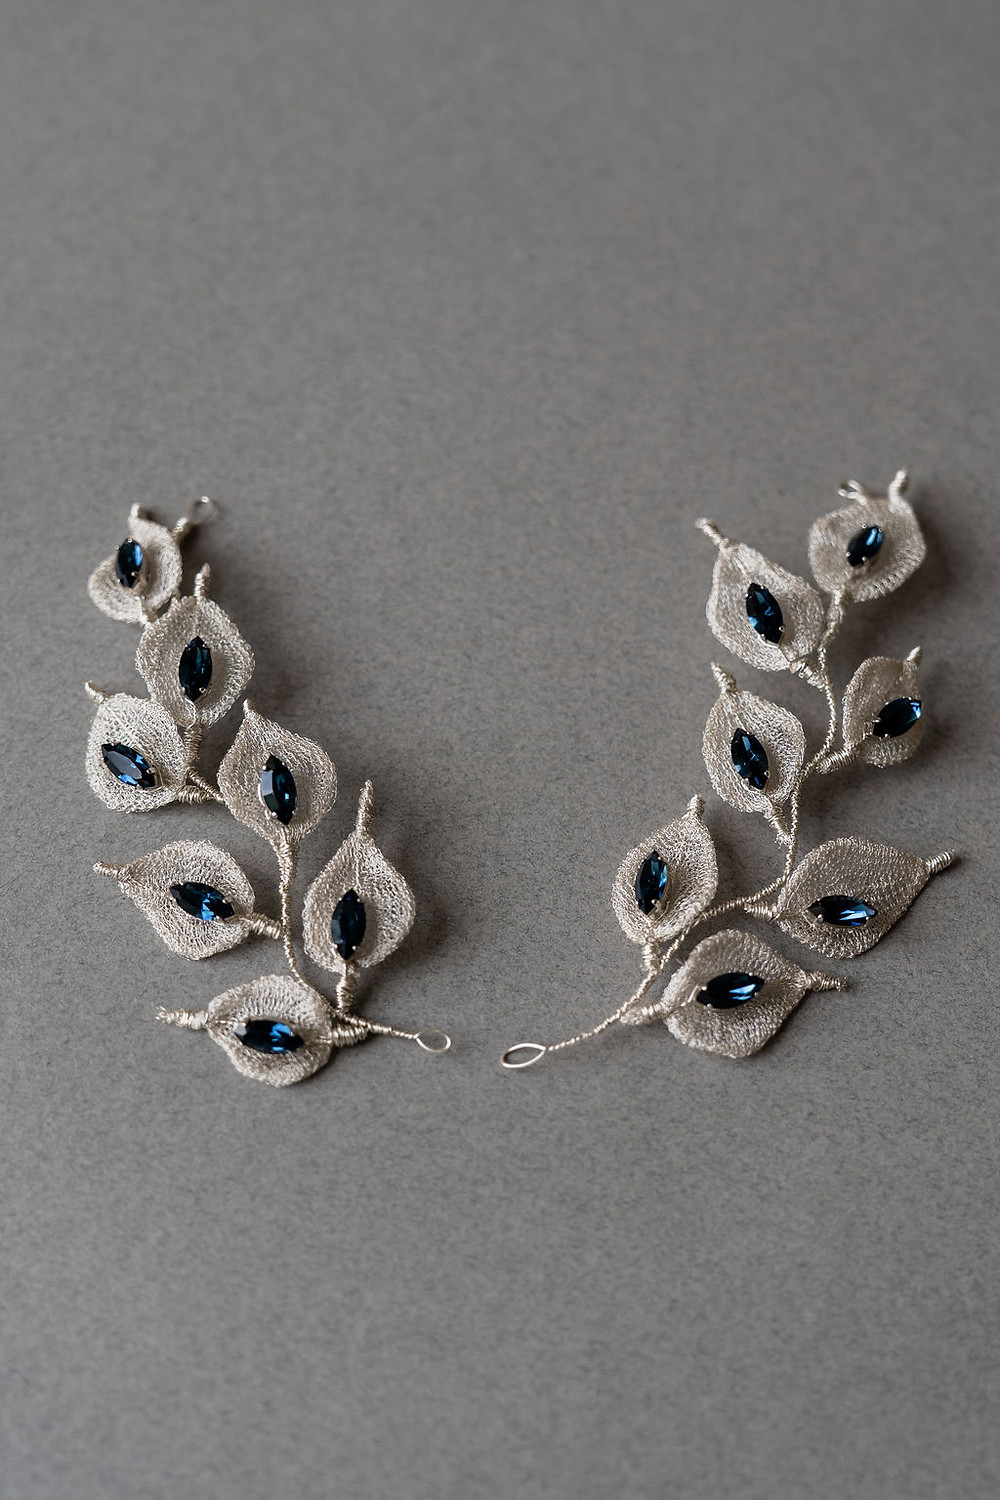 Bridal poytail accessorised with a duo of symmetrical silver leaves and sapphire crystal hair accessories